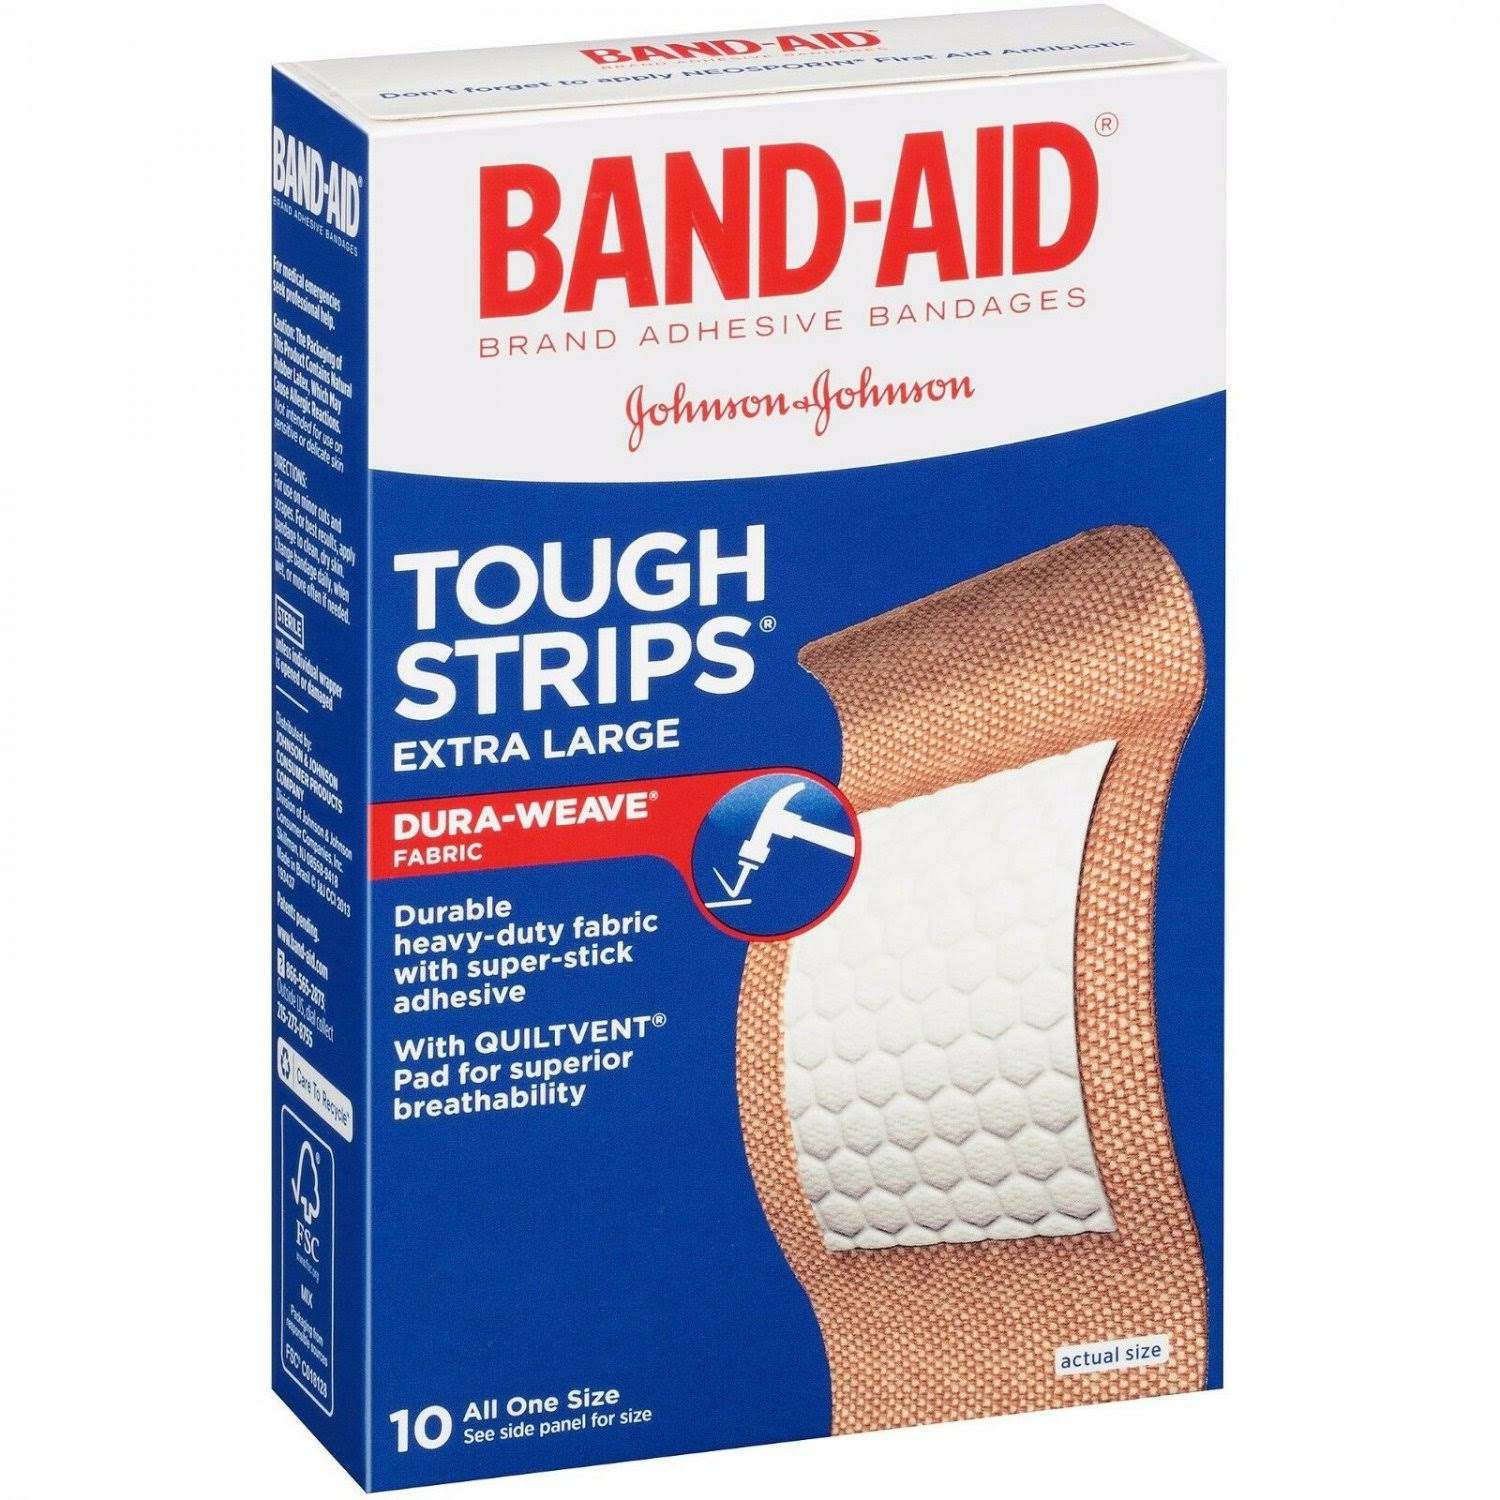 Band-Aid Tough Strips Adhesive Bandages - Extra Large, 10 Pack